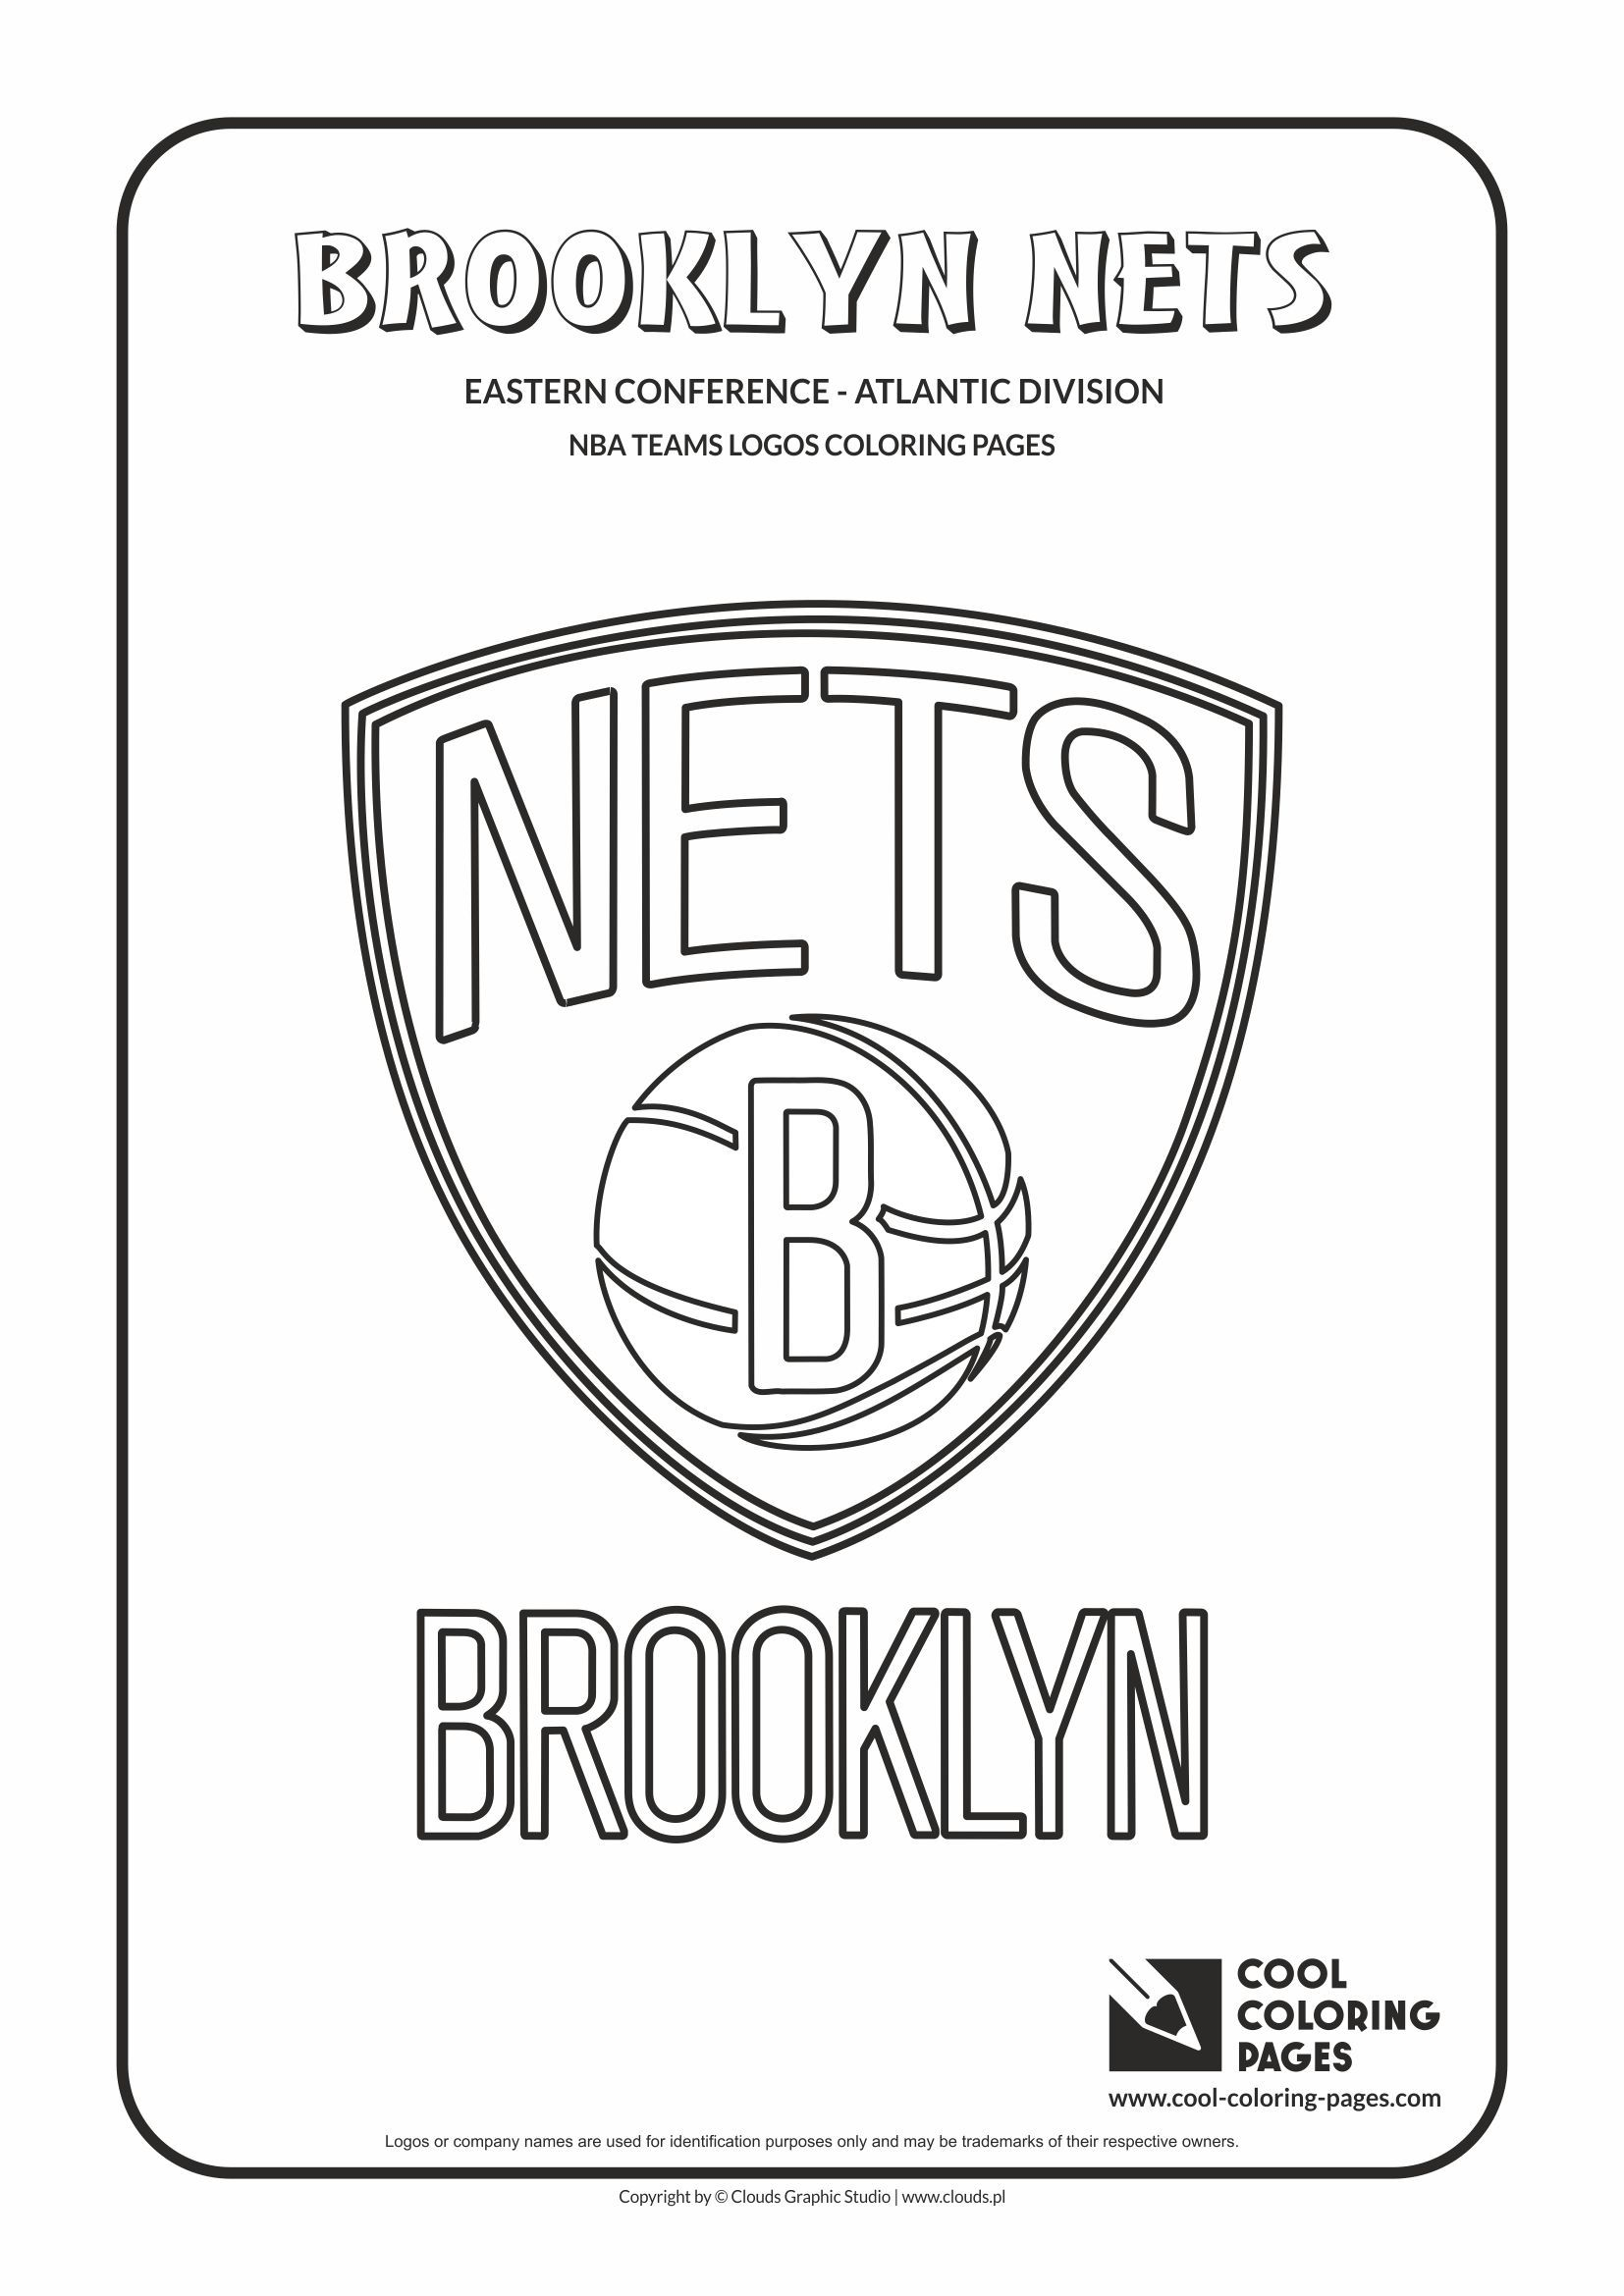 coloring pages nba - cool coloring pages nba teams logos brooklyn nets logo